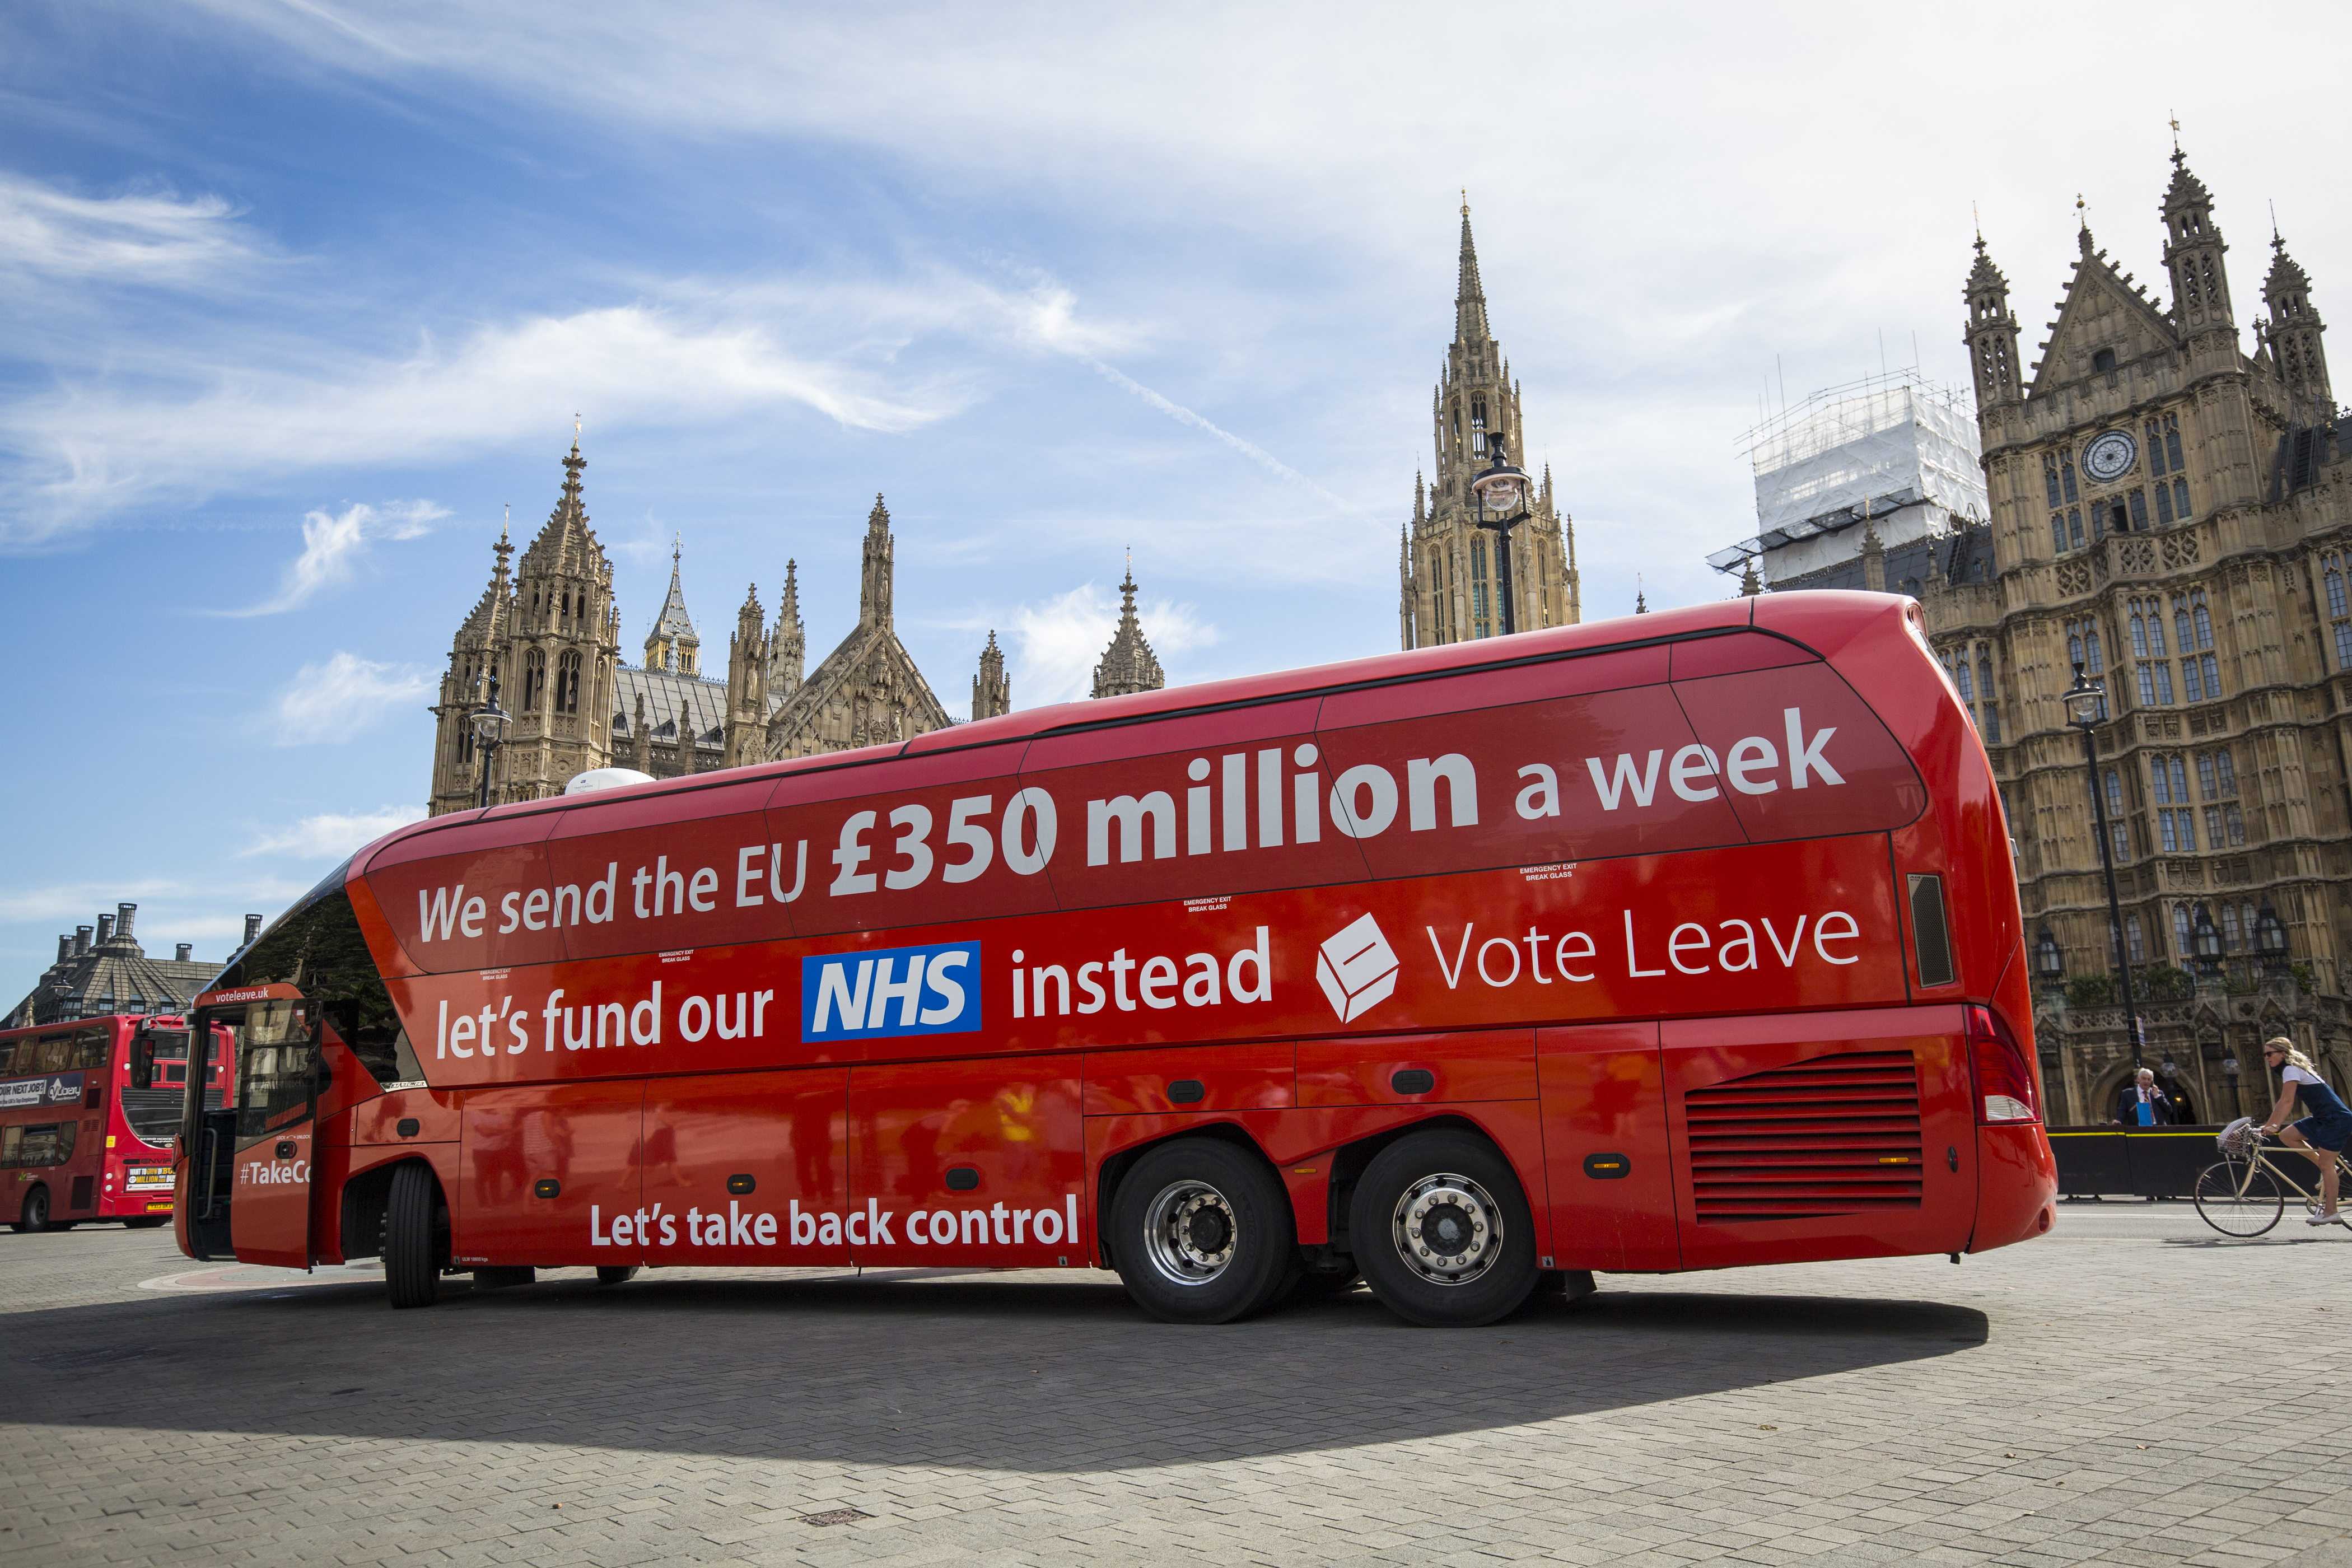 """LONDON, ENGLAND - JULY 18: A 'Vote LEAVE' battle bus is parked outside the Houses of Parliament in Westminster by the environmental campaign group Greenpeace before being re-branded on July 18, 2016 in London, England. The bus which was used during the European Union (EU) referendum campaign and had the statement """"We send the EU £350 million a week let's fund our NHS instead"""" along the side was today covered with thousands of questions for the new Prime Minister Theresa May and her government about what a 'Brexit' might mean for the environment. (Photo by Jack Taylor/Getty Images)"""